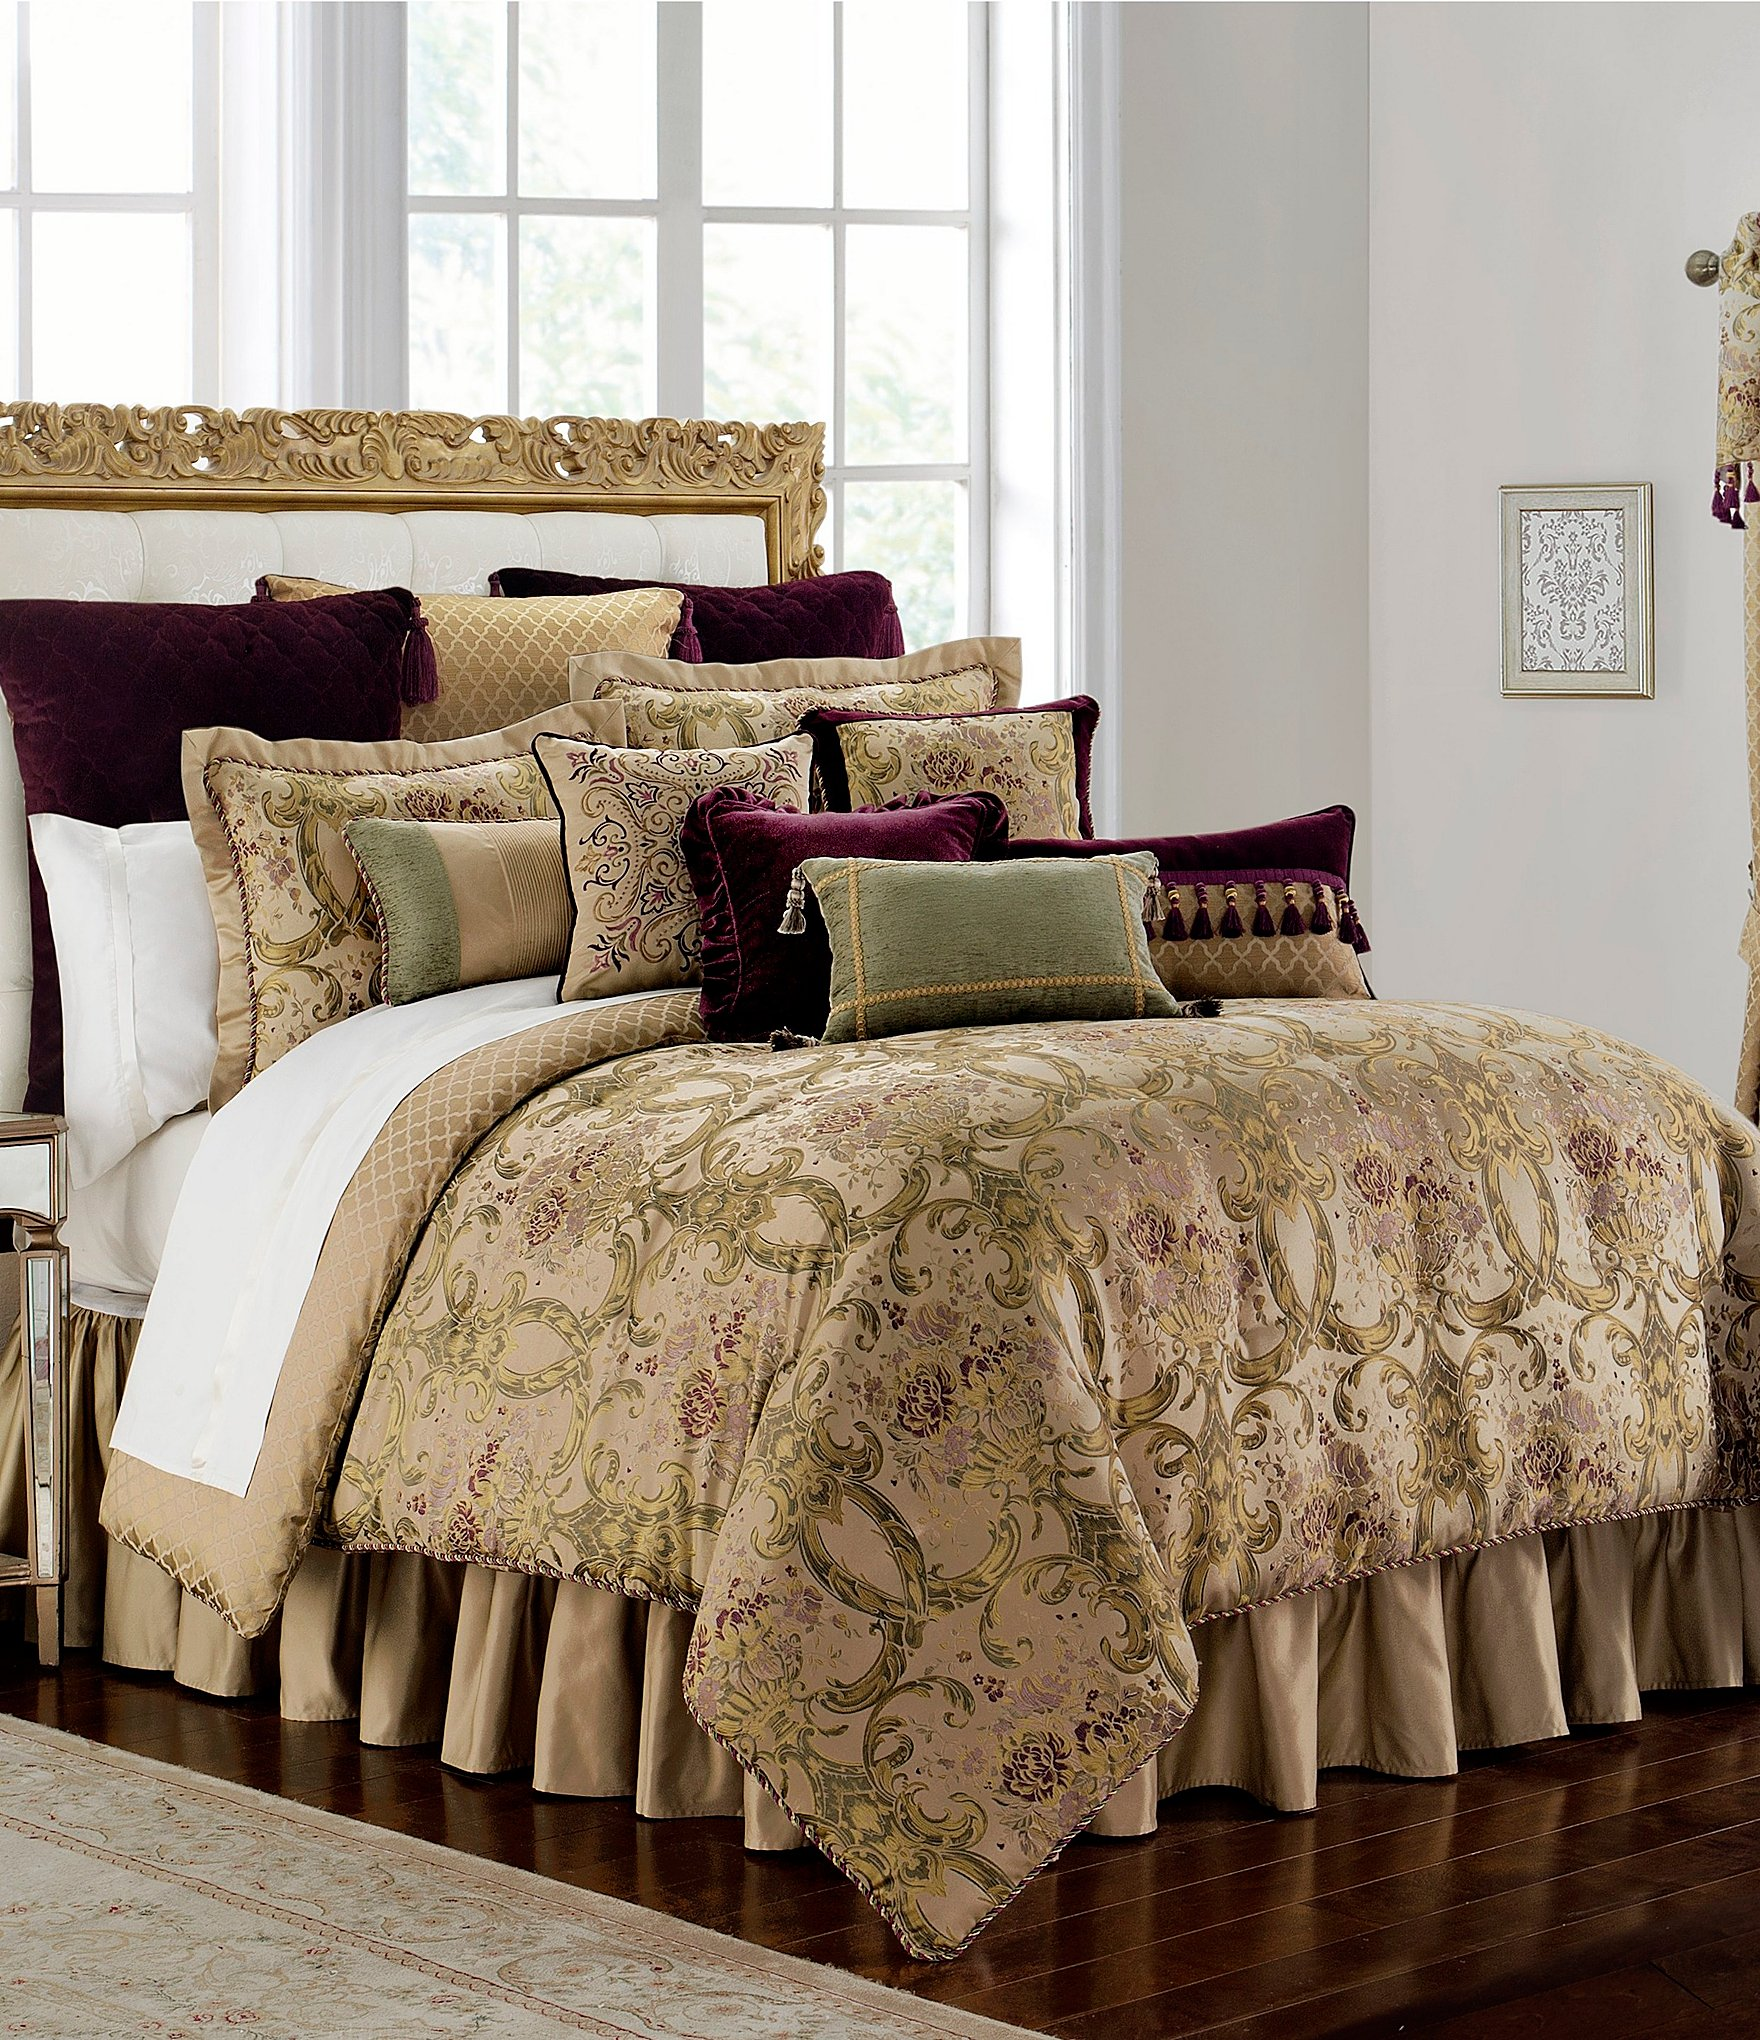 Waterford Home Bedding